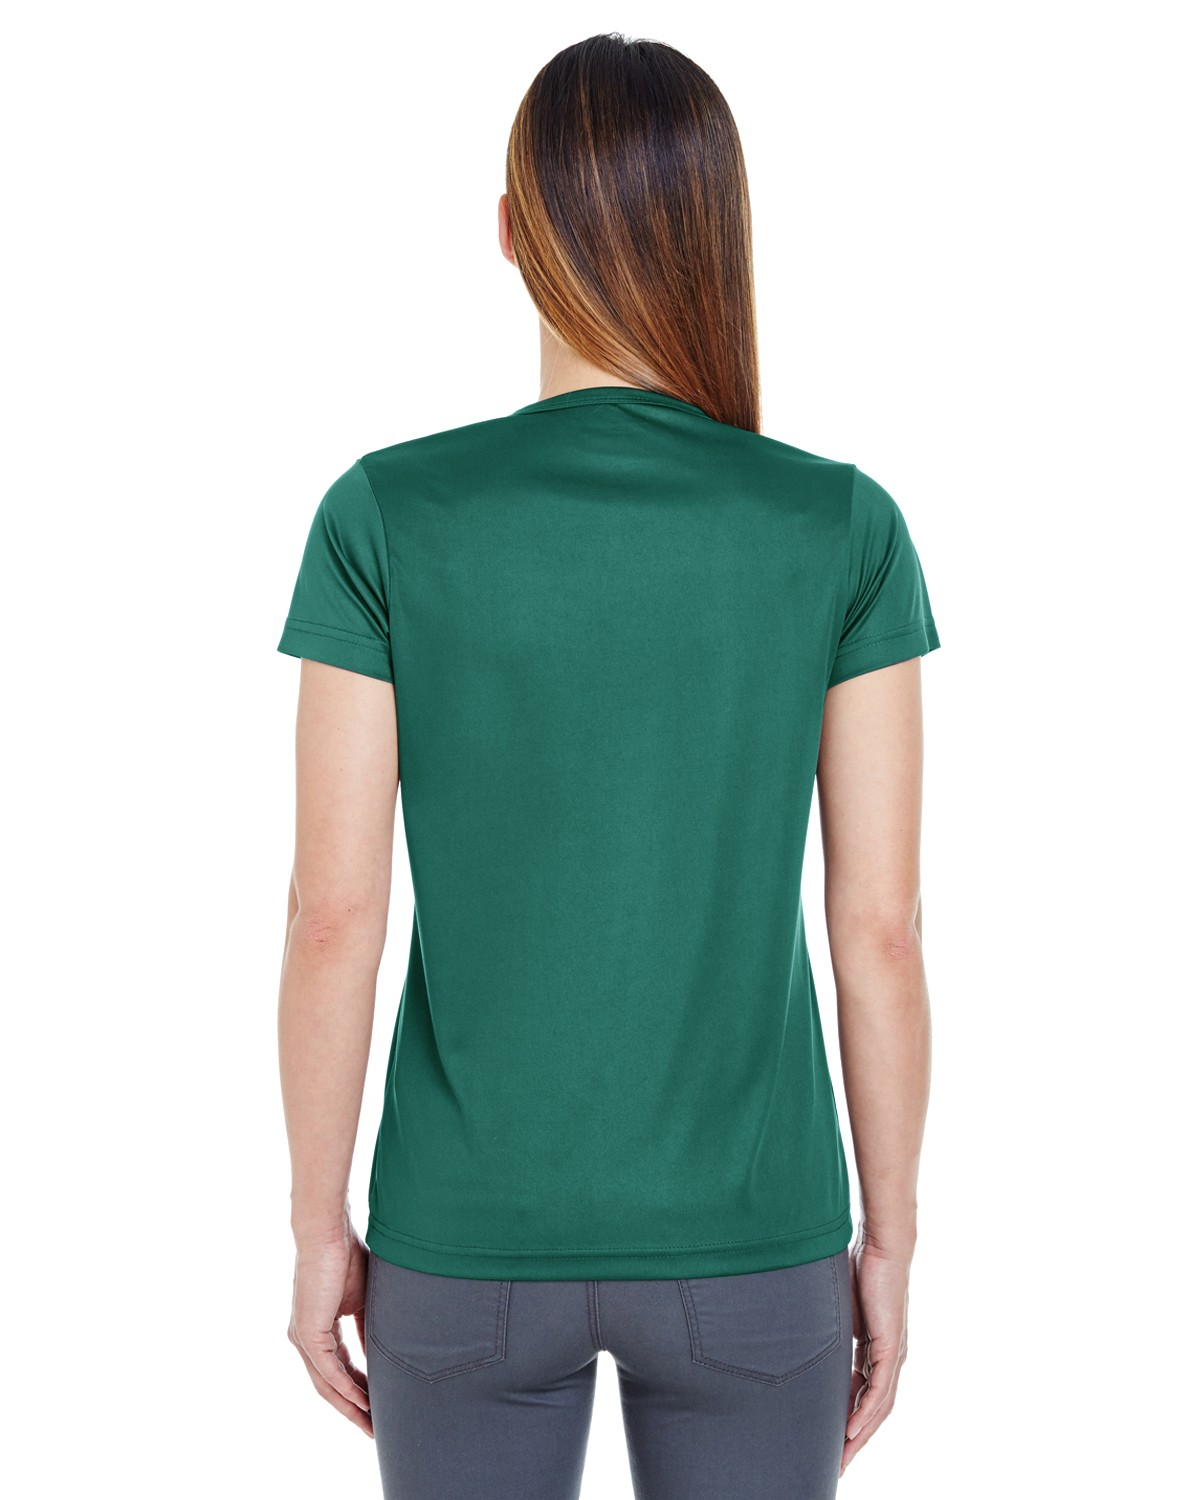 8420L UltraClub FOREST GREEN